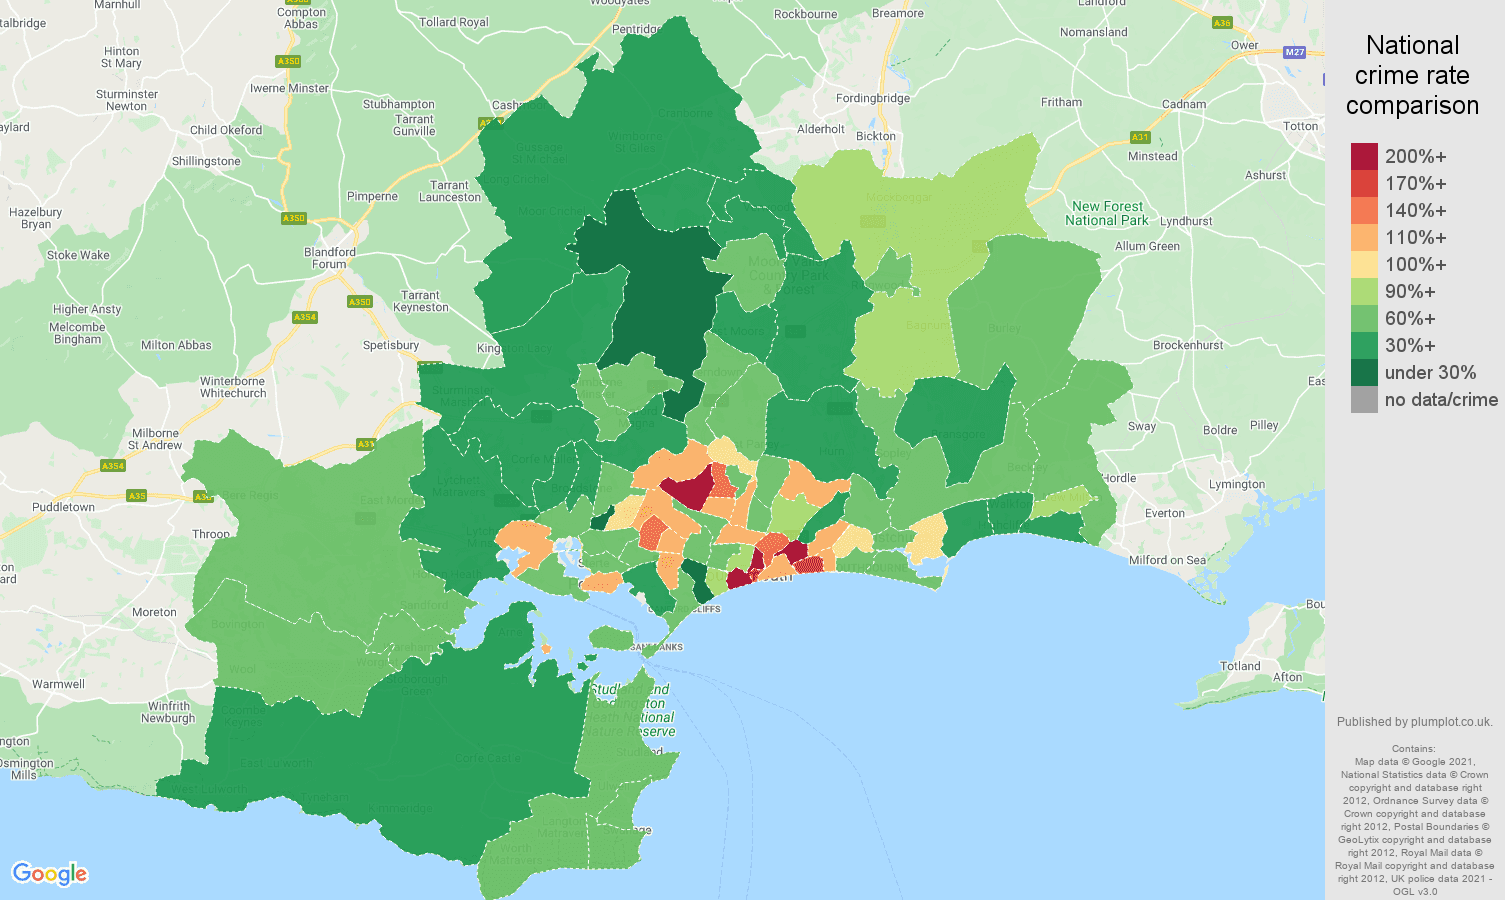 Bournemouth violent crime rate comparison map